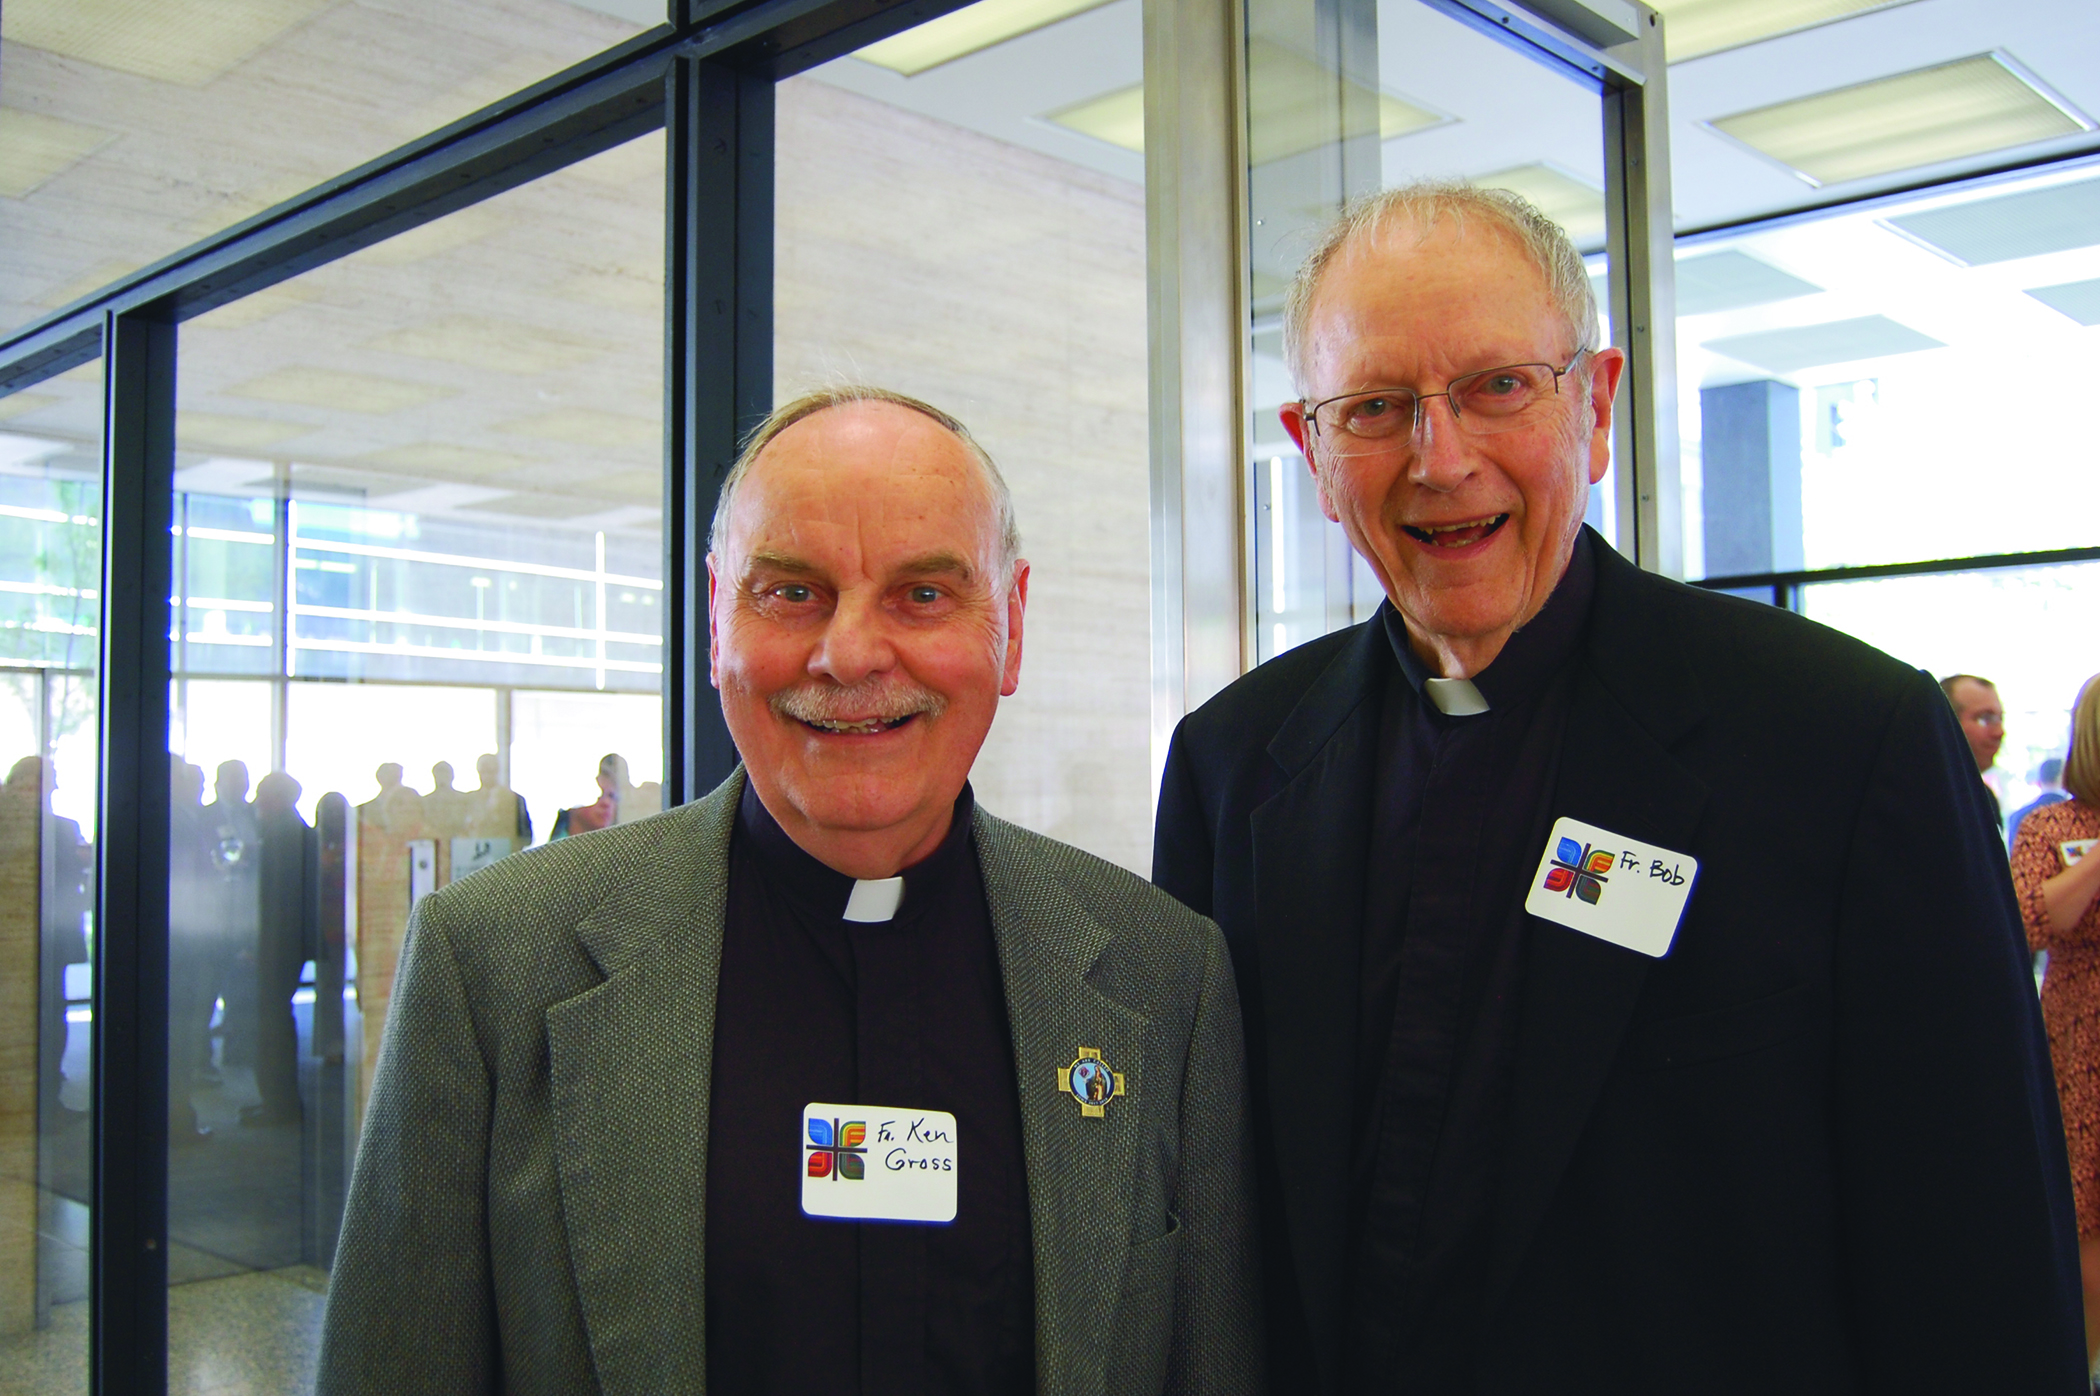 ADA: Supporting our priests